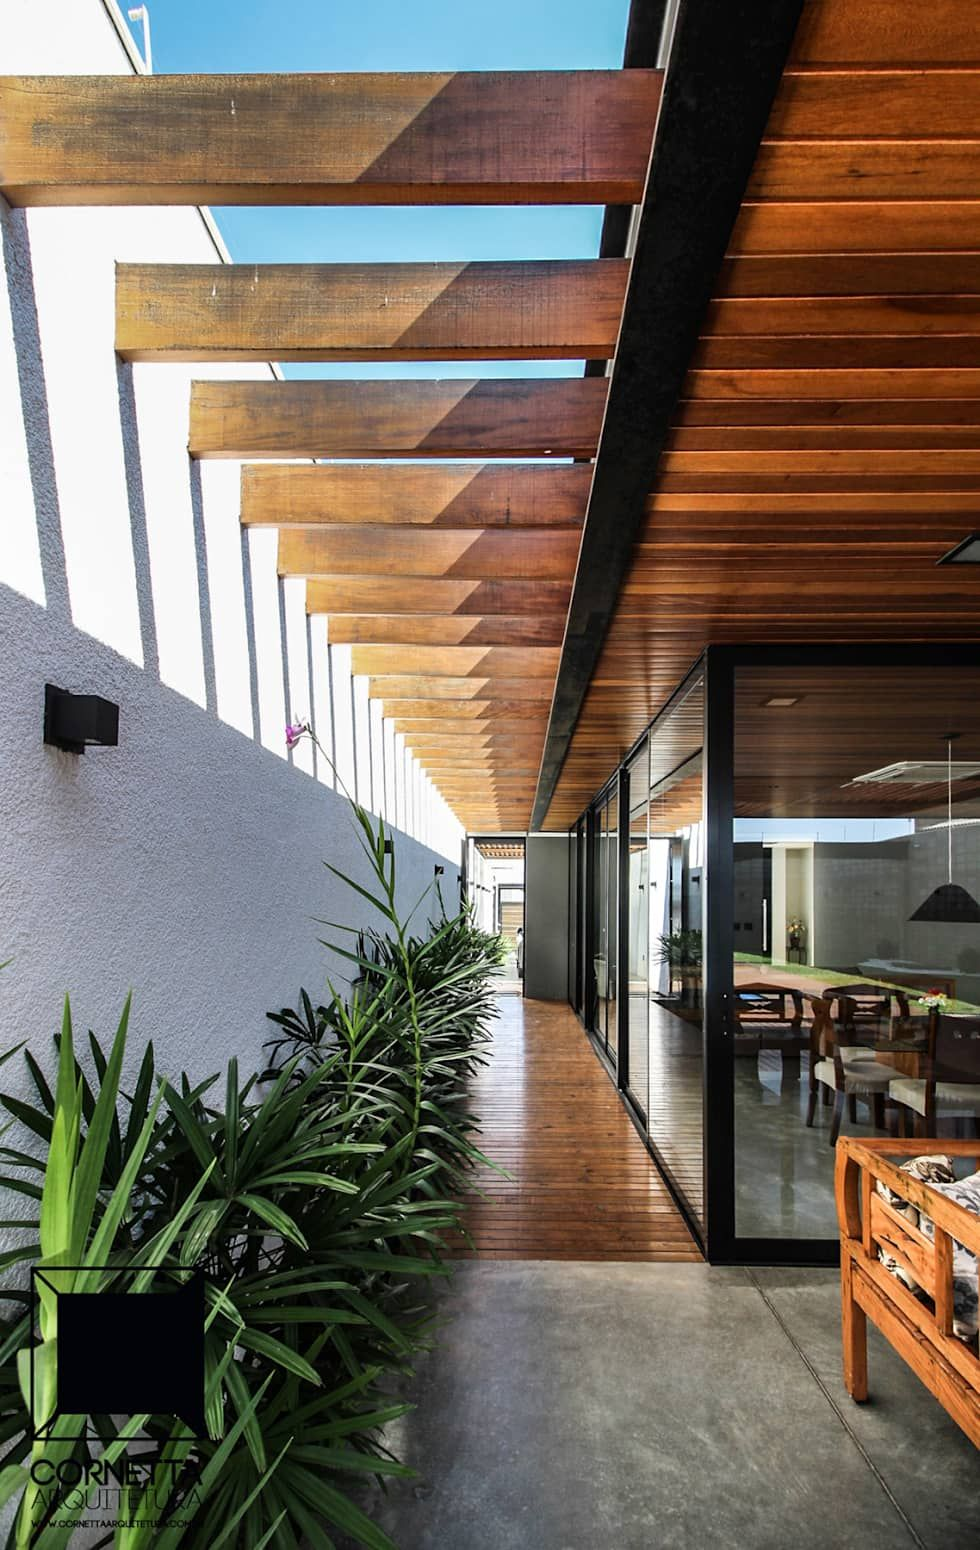 Casa ats by cornetta arquitetura architecture and home decor bedroom bathroom kitchen living room interior design decorating ideas also best images bamboo ceilings rh pinterest